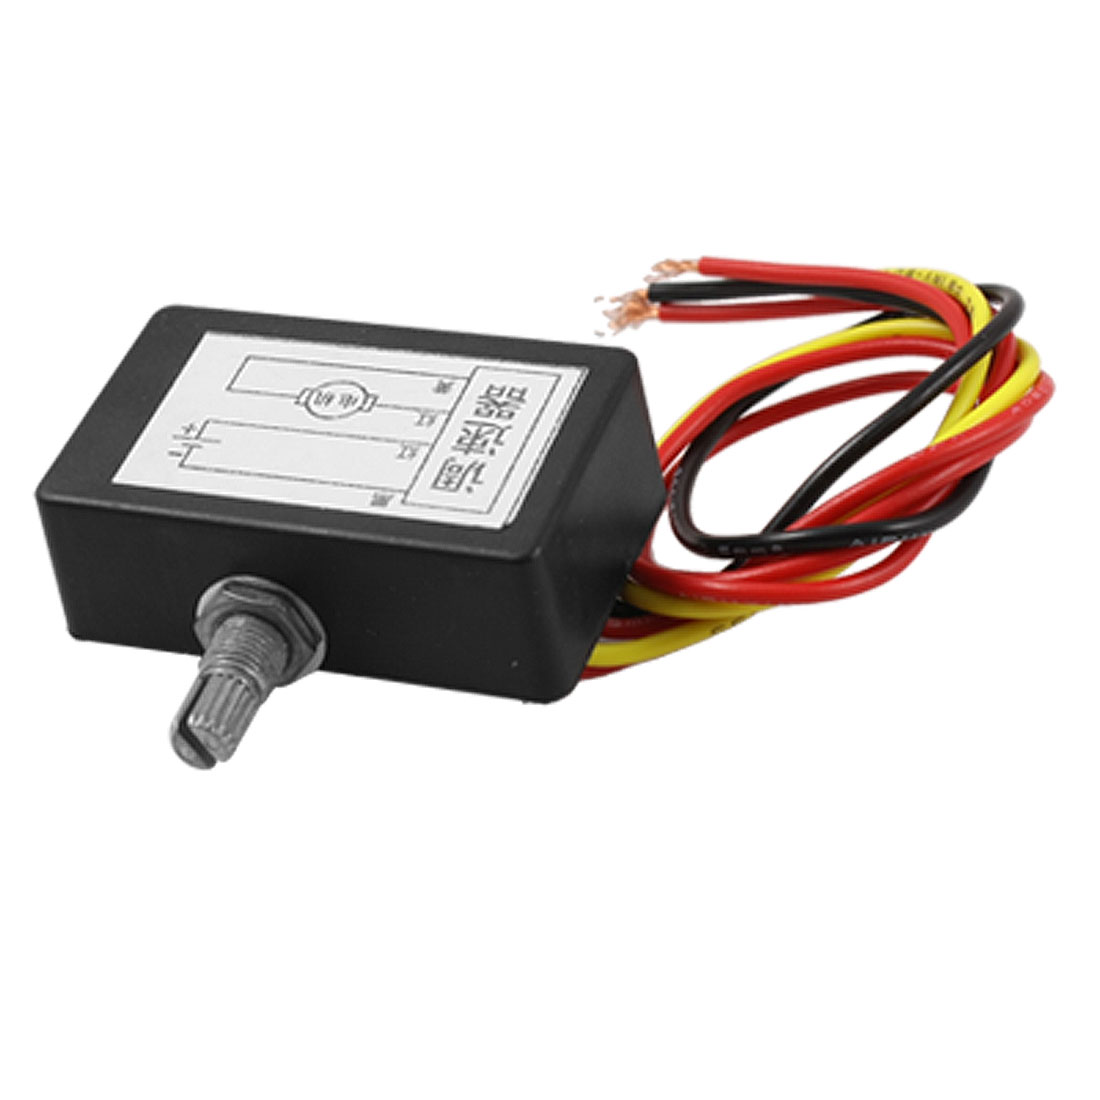 DC 24V 4 Wires Electric Gear Motor Speed Controller Black